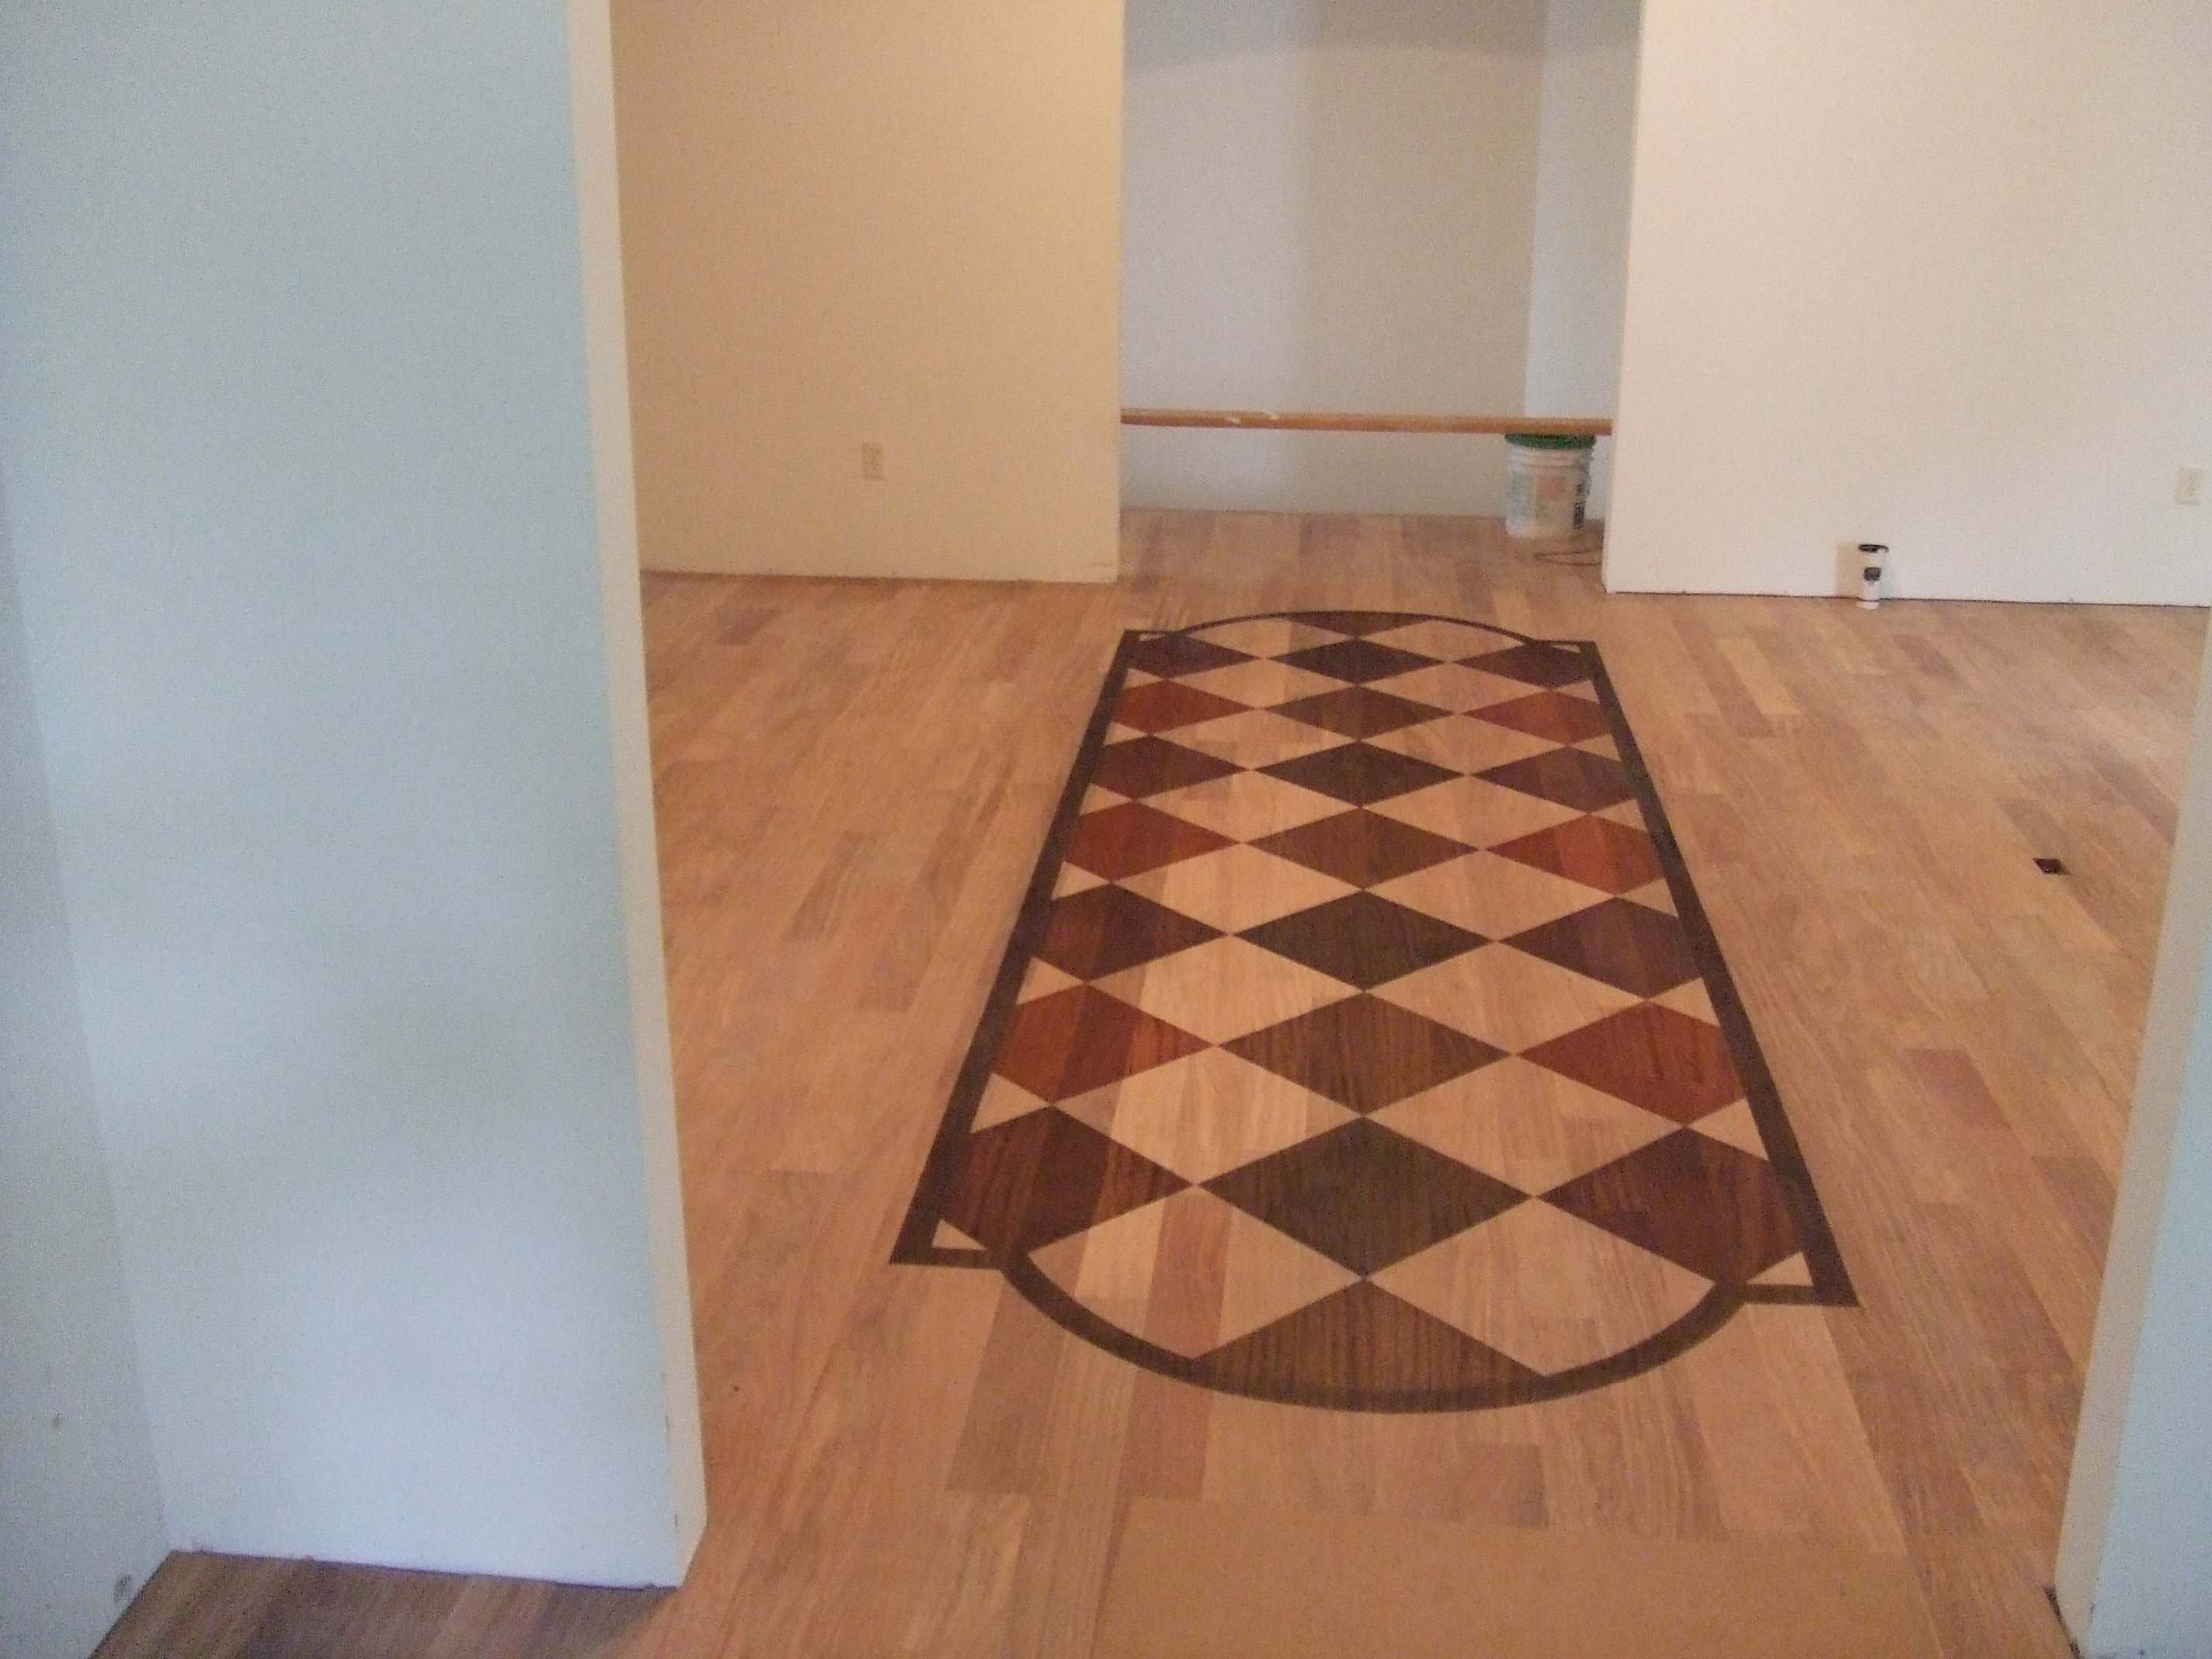 joseph f maire hardwood flooring inc video image